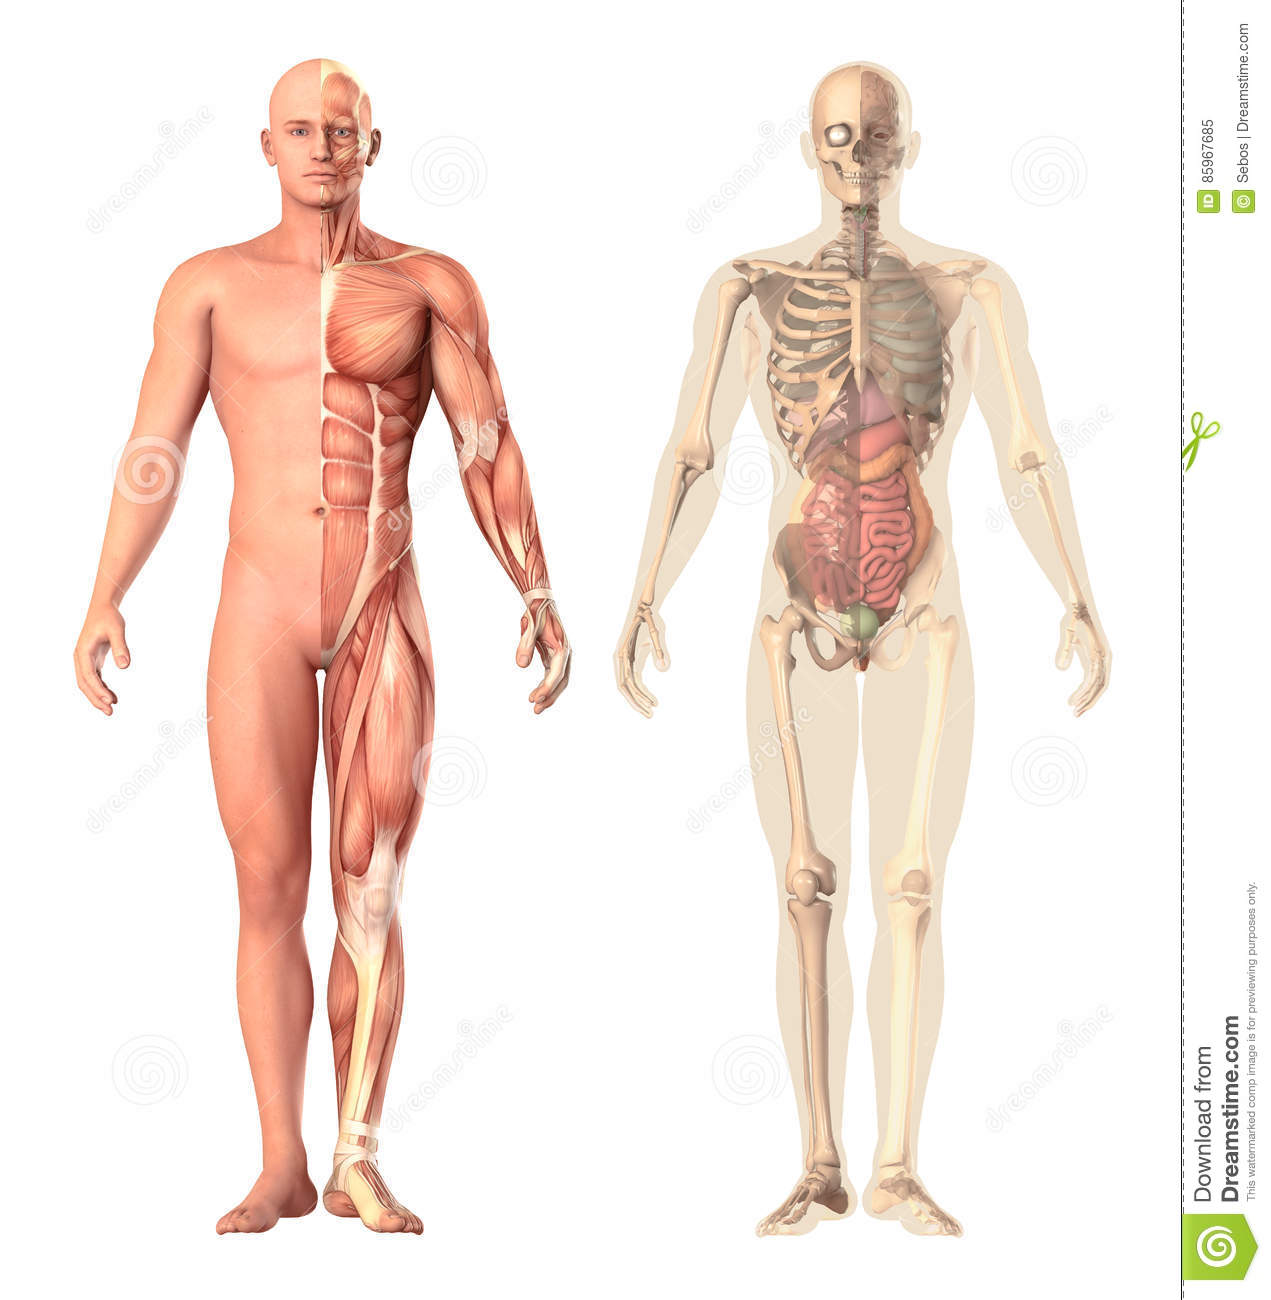 Medical Illustration Of A Human Anatomy Transparency View The